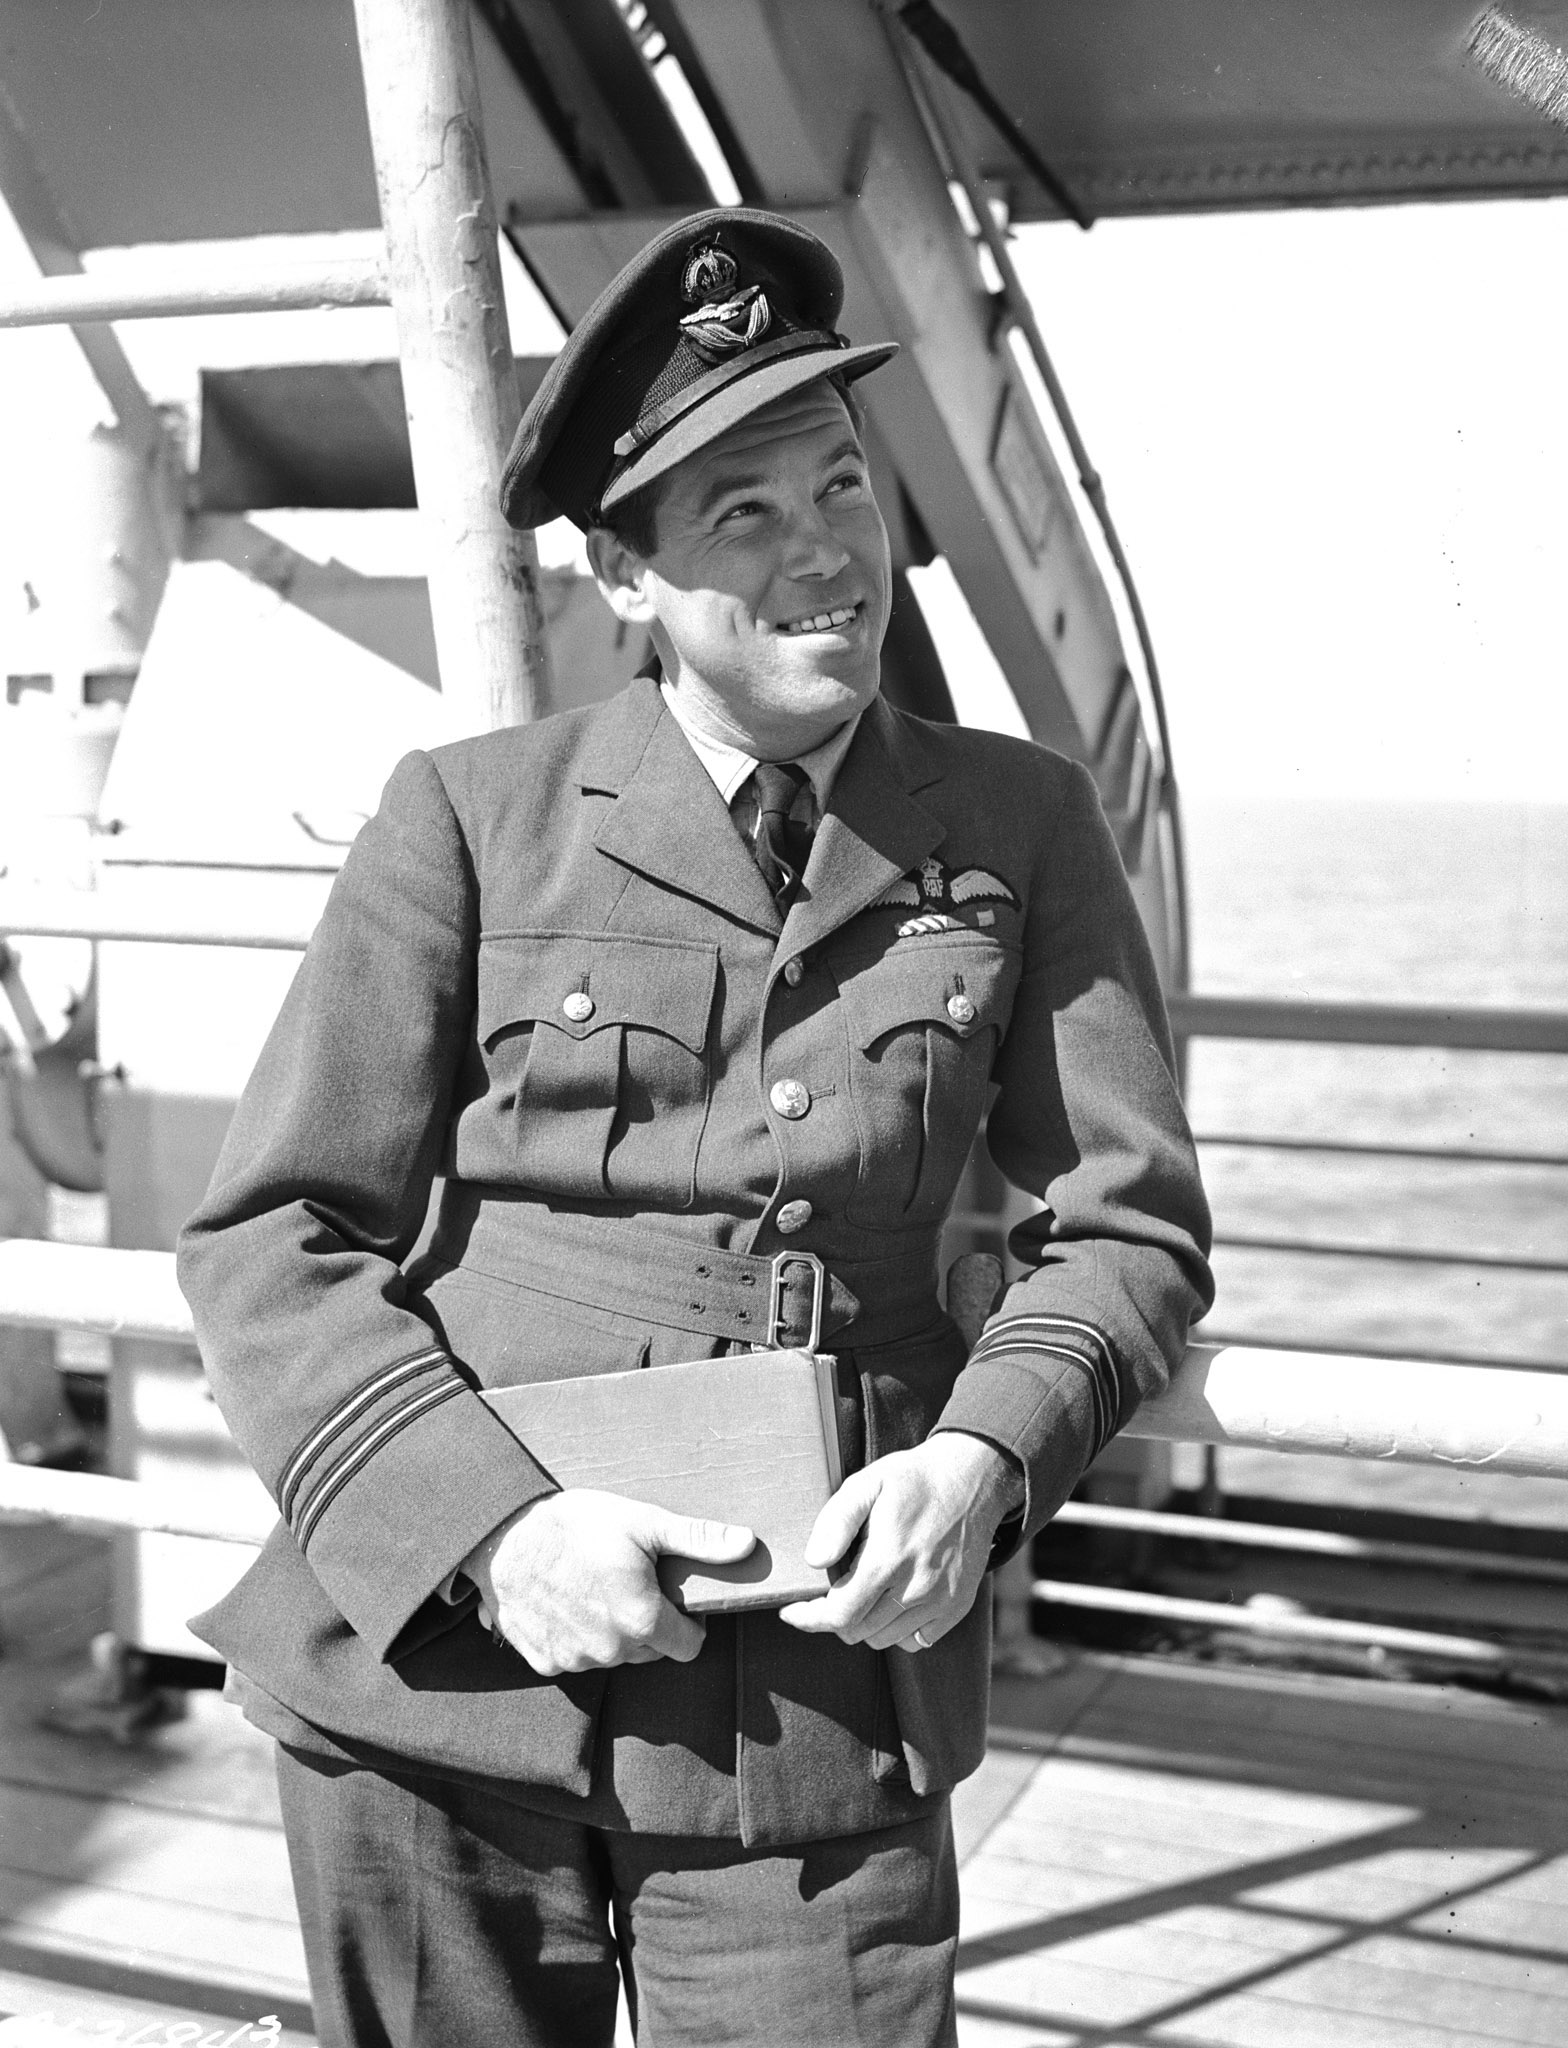 A black and white photo of a Second World War air force officer in dress uniform, wearing a hat.